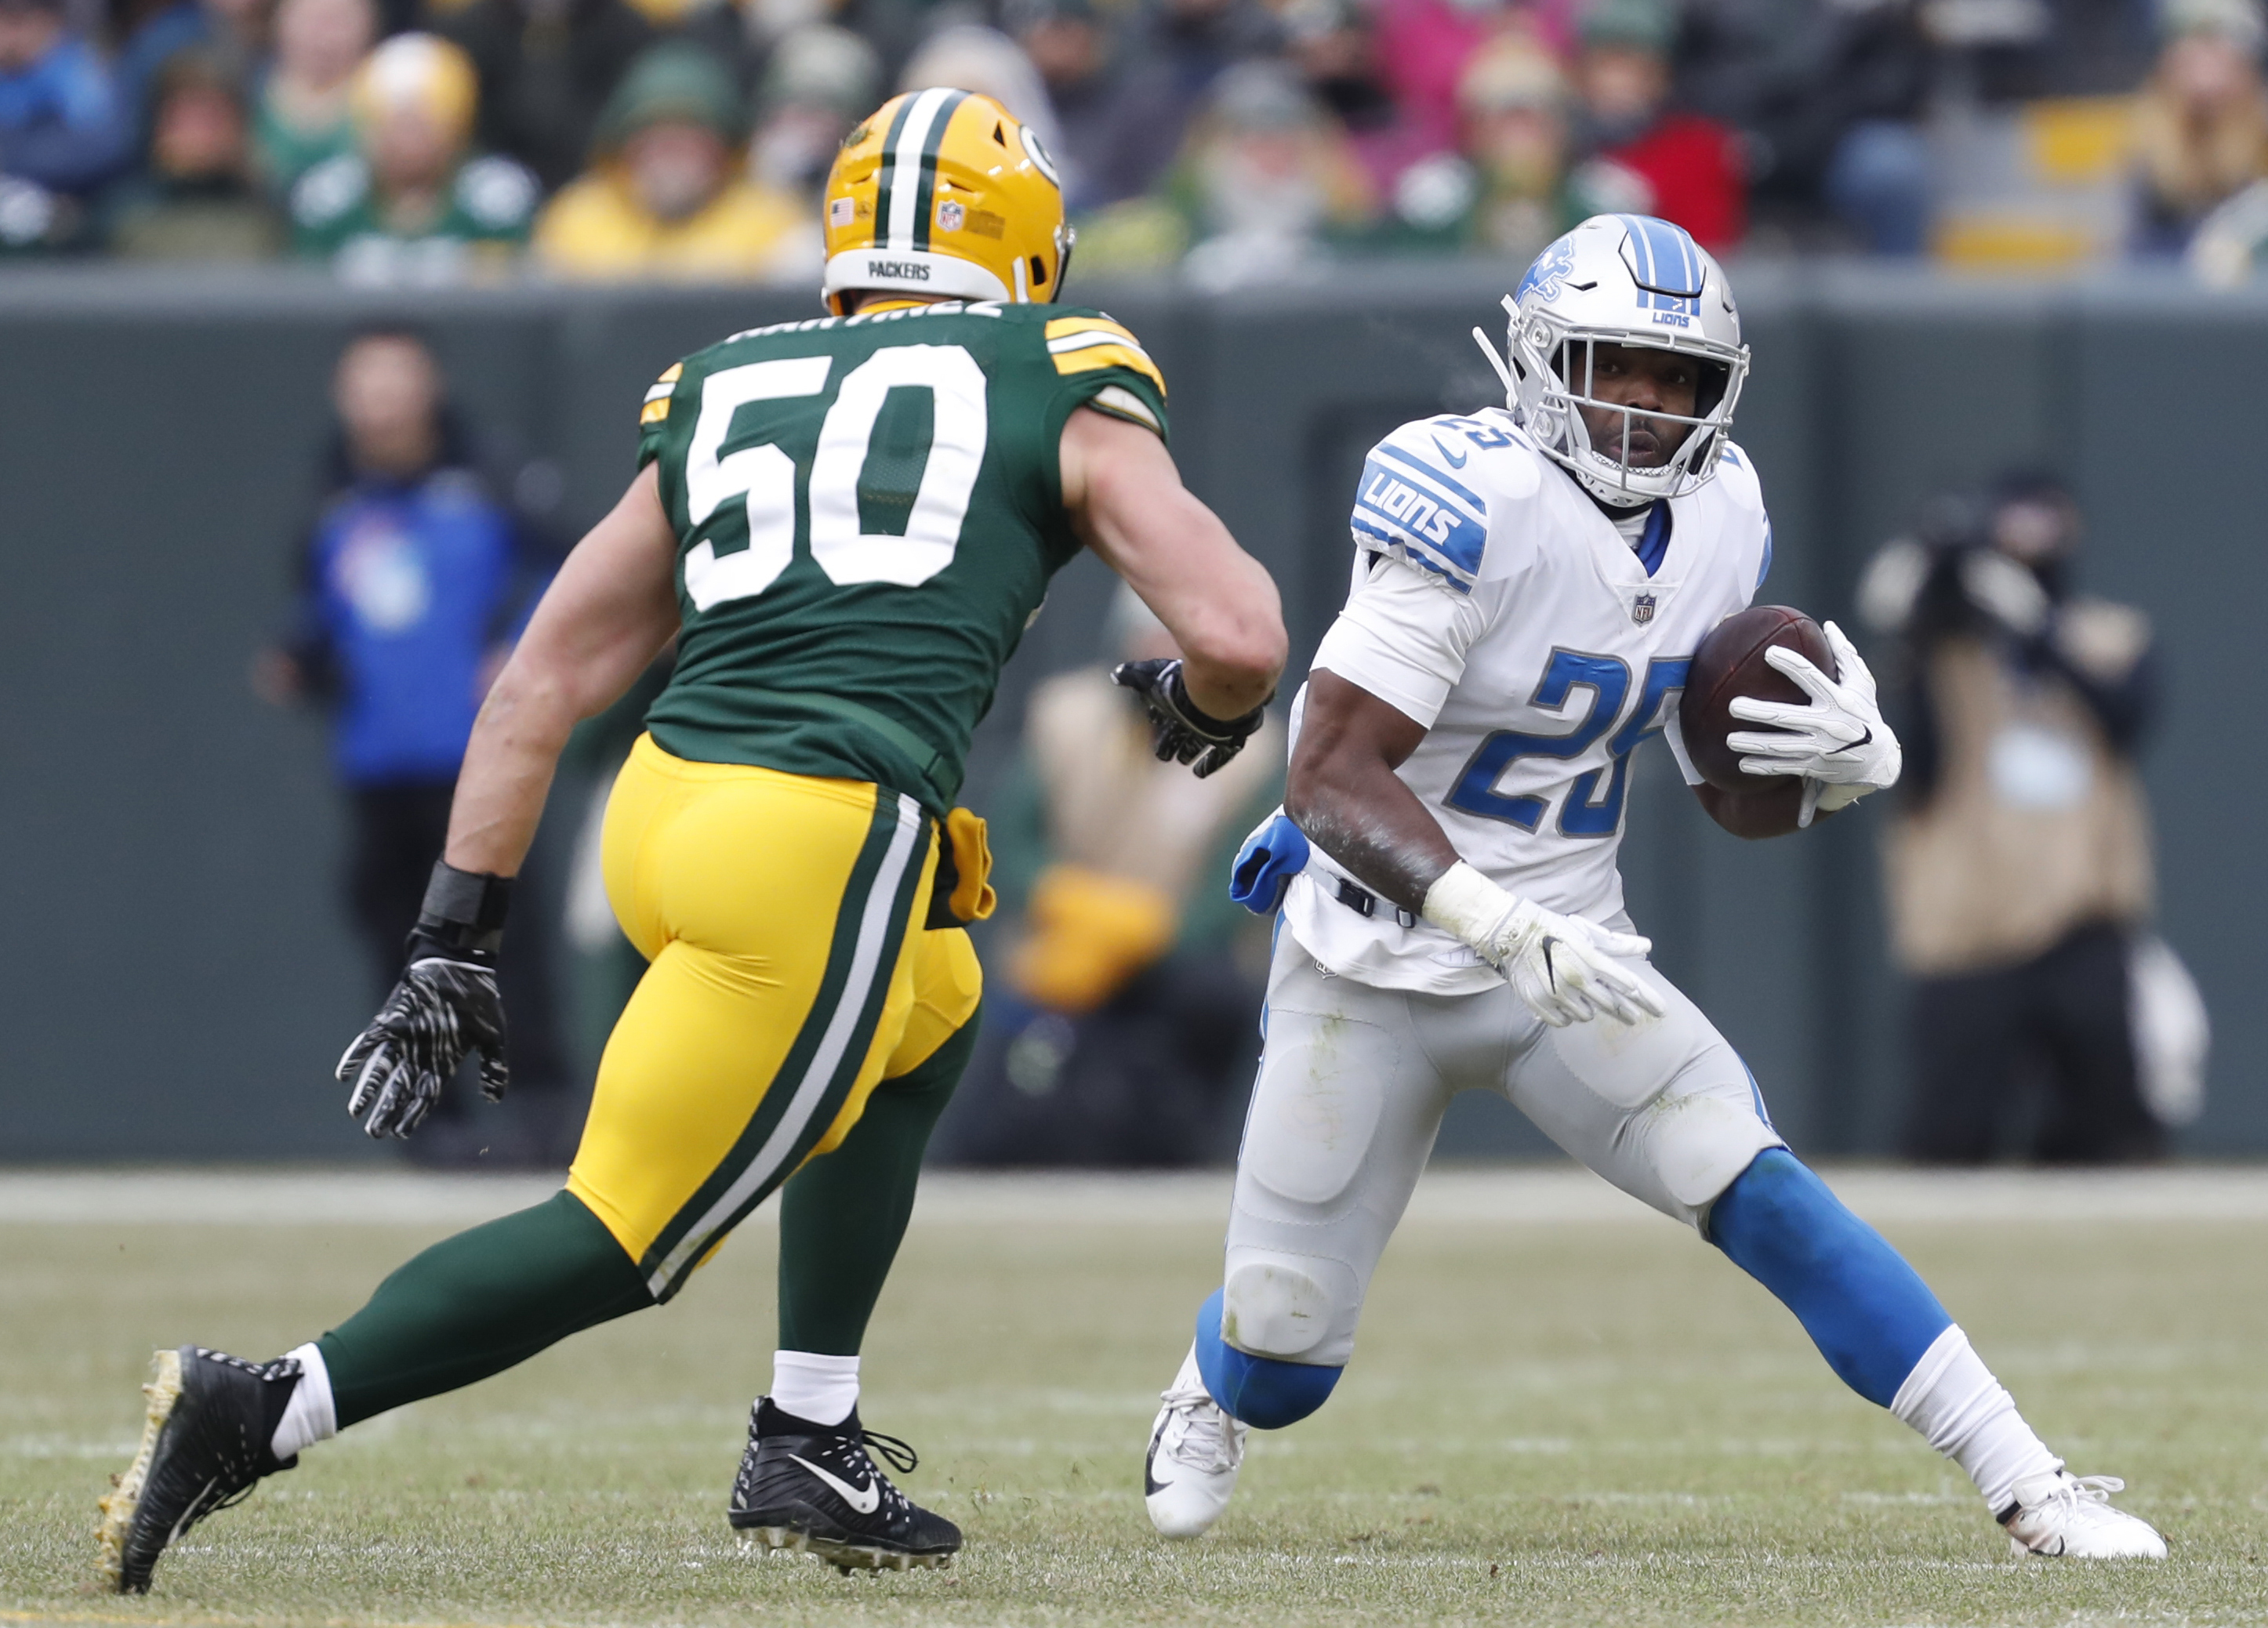 Lions release running back Theo Riddick after 6 seasons